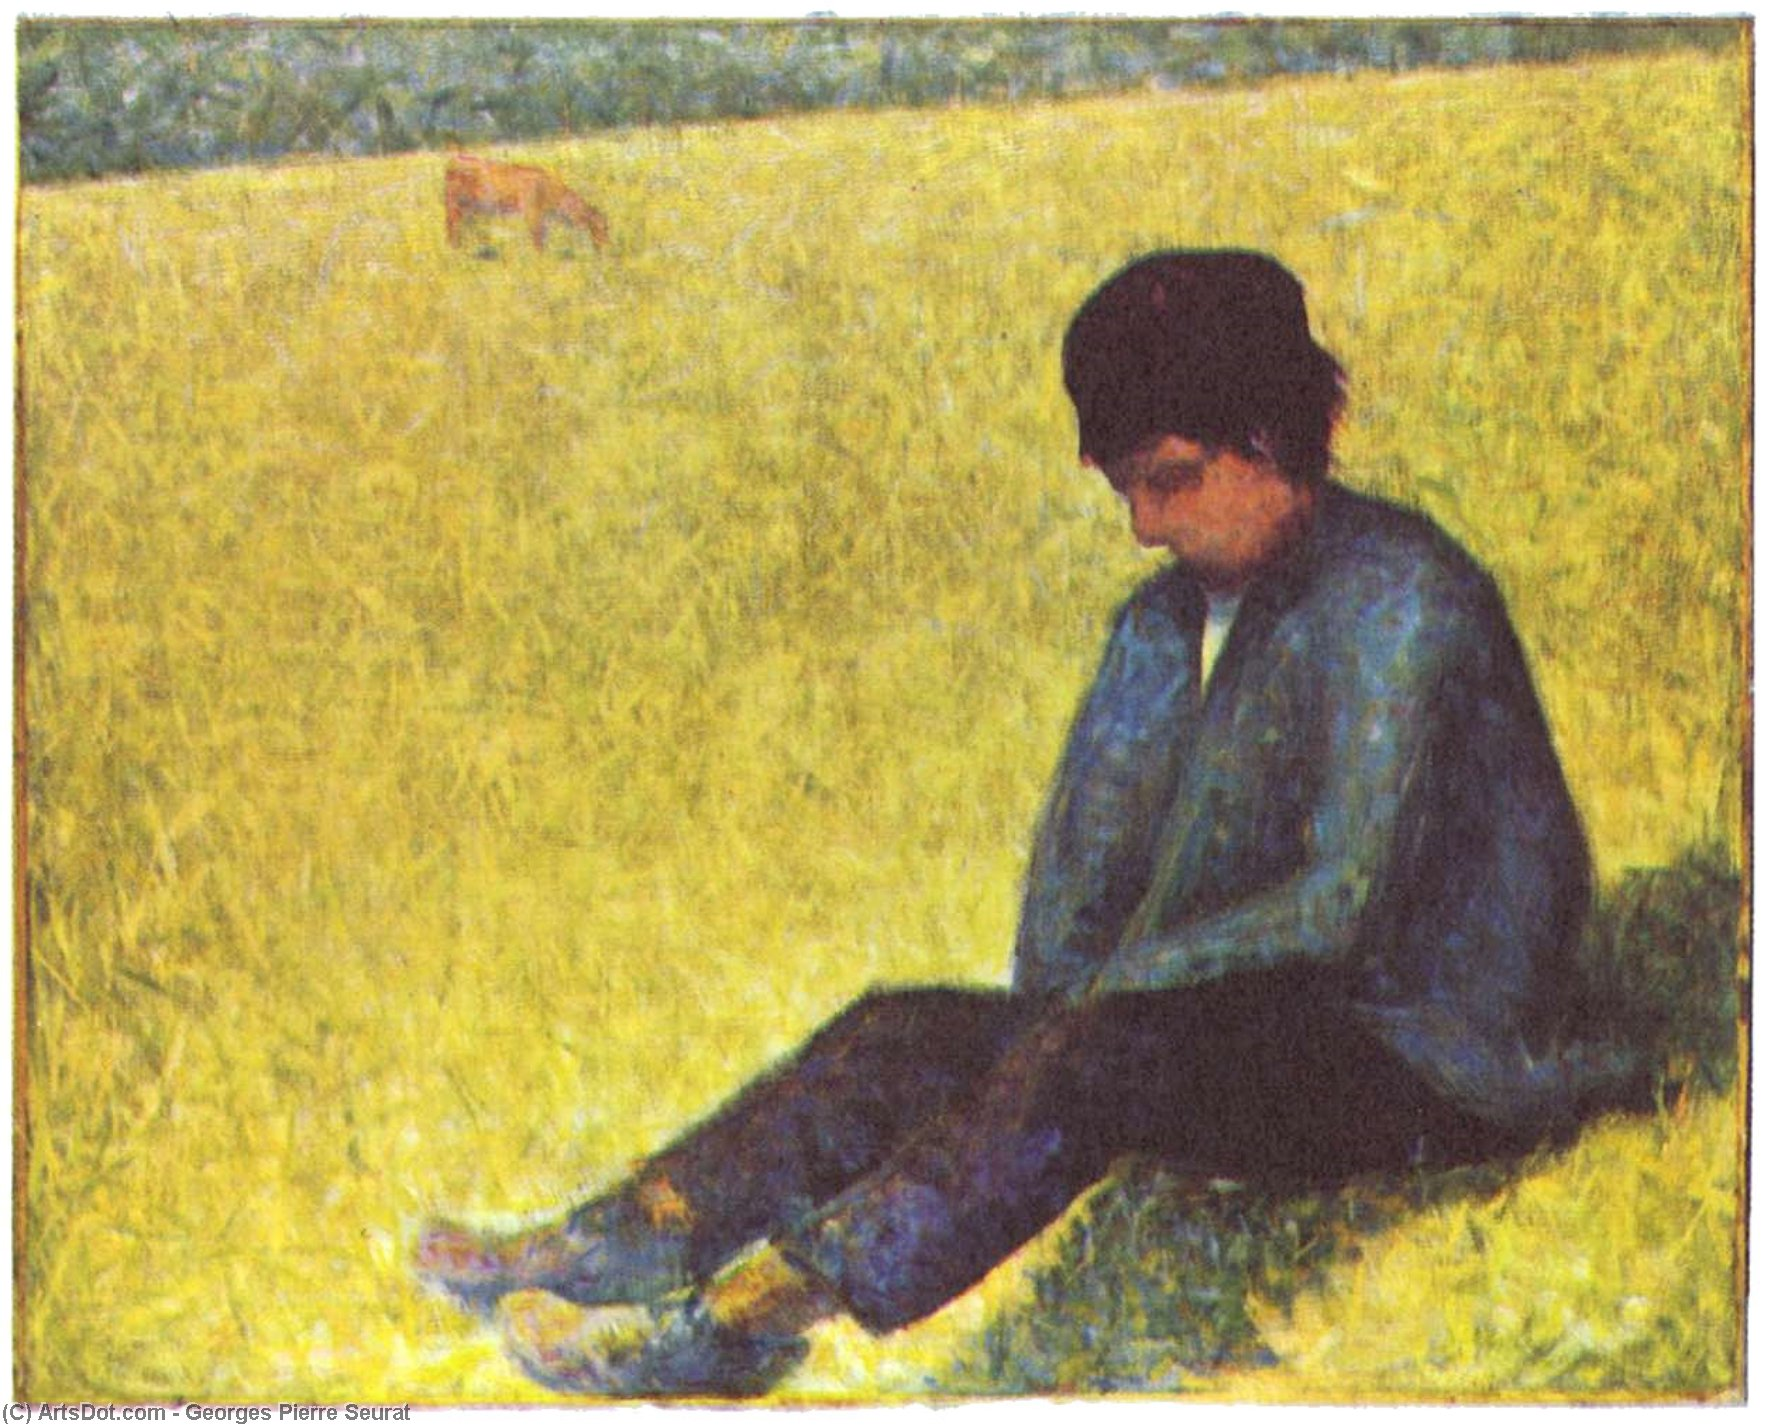 Wikioo.org - The Encyclopedia of Fine Arts - Painting, Artwork by Georges Pierre Seurat - Peasant boy sitting in a meadow